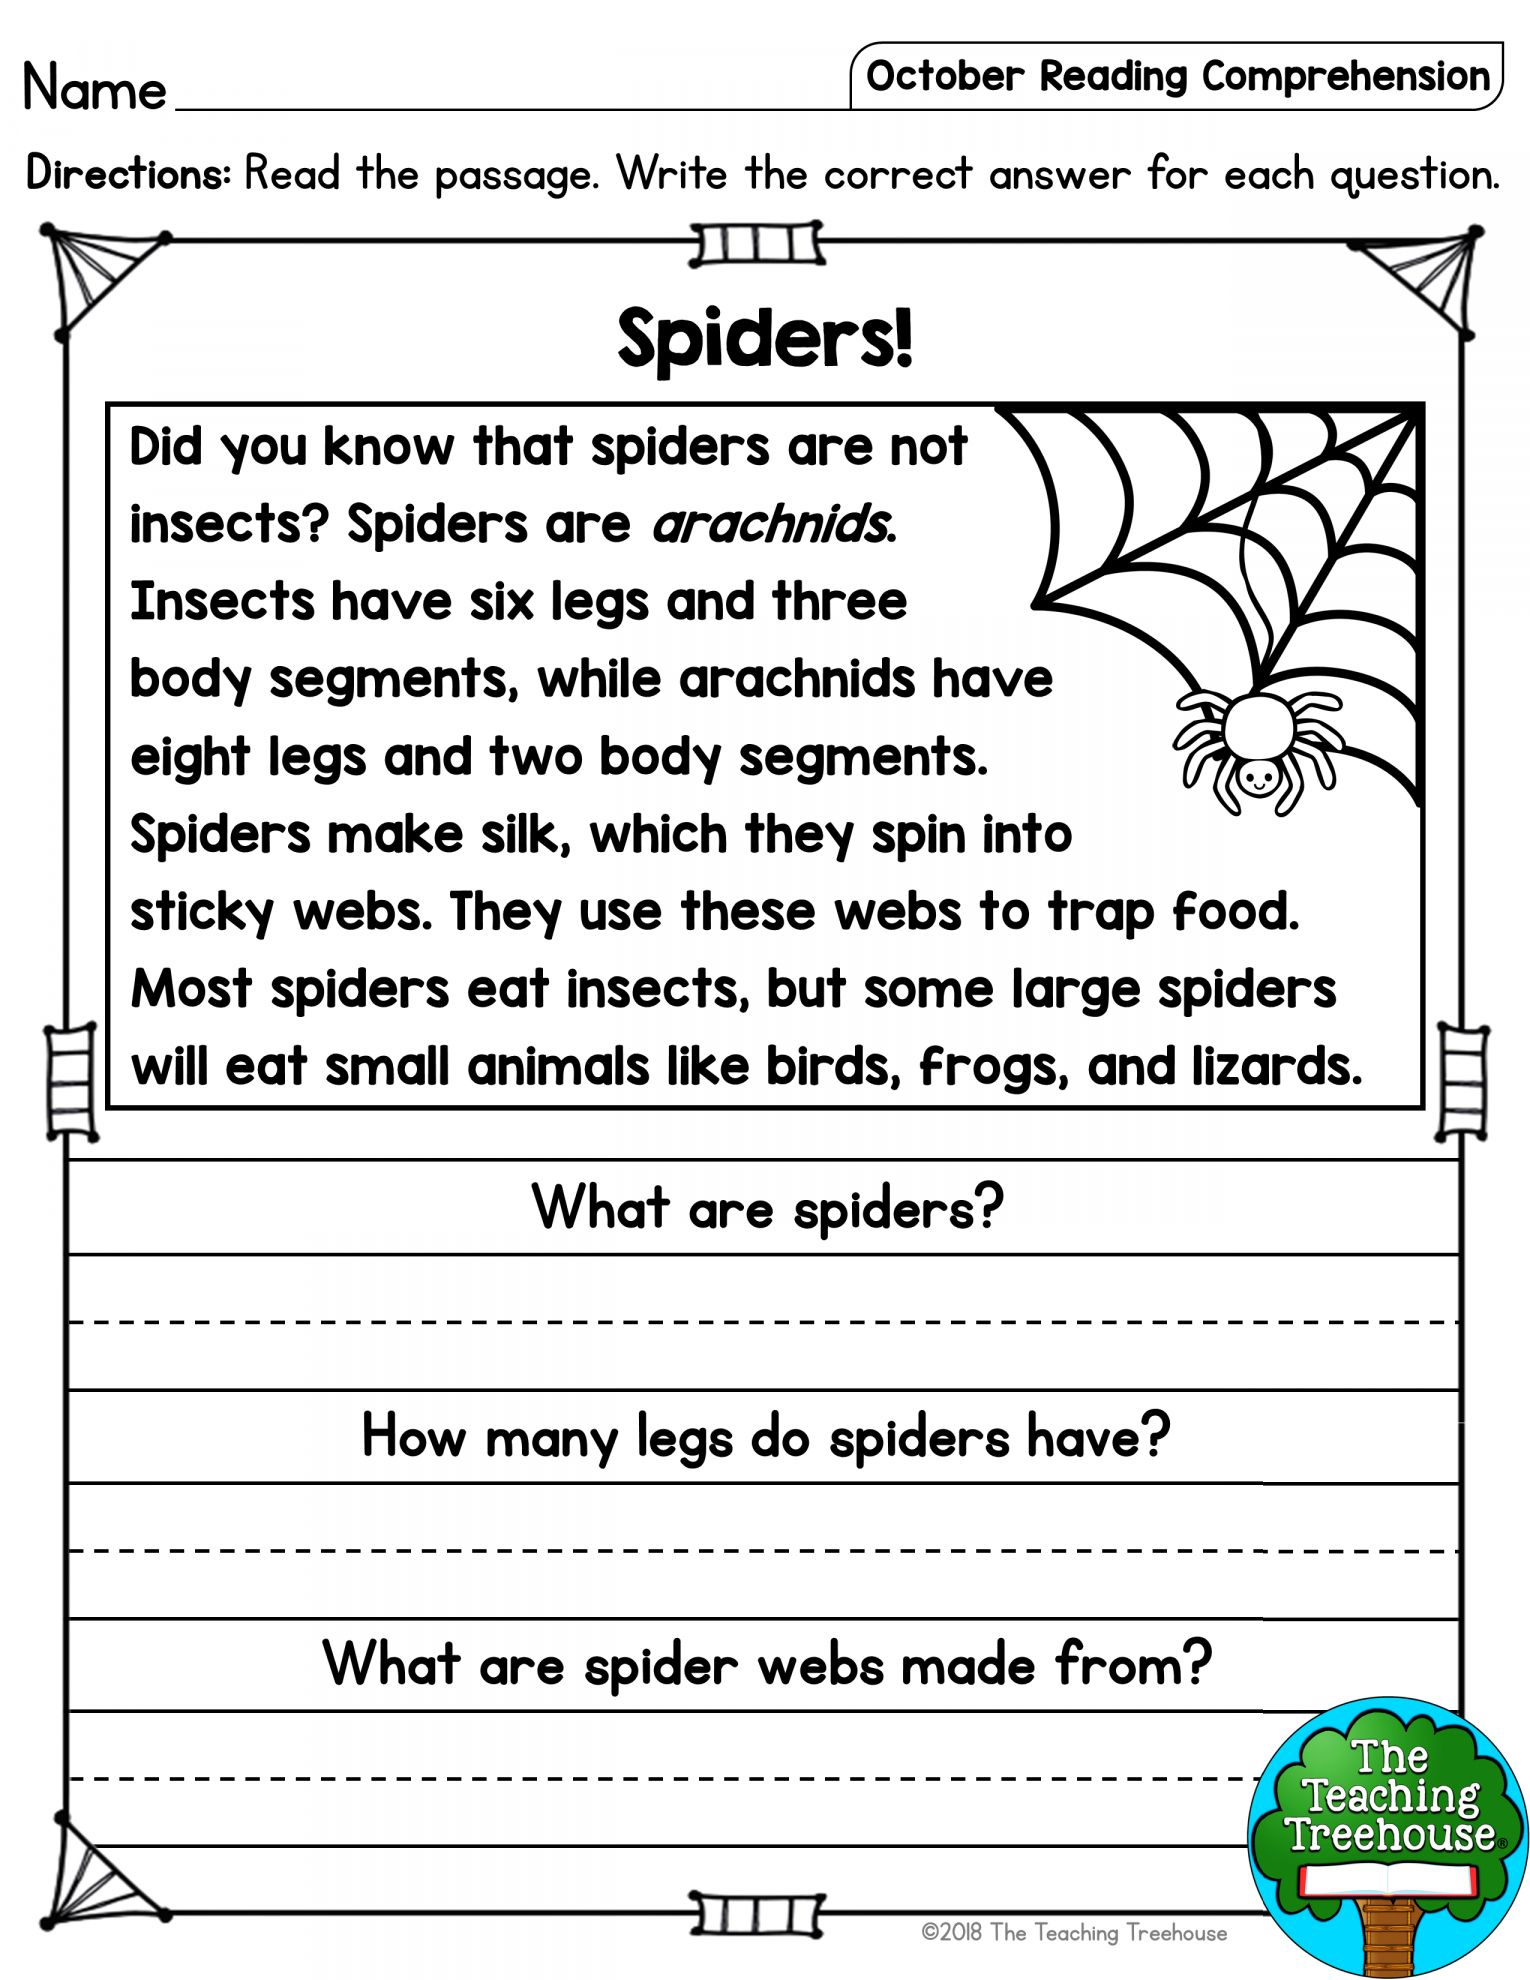 Spider Reading Comprehension Worksheet And October Reading